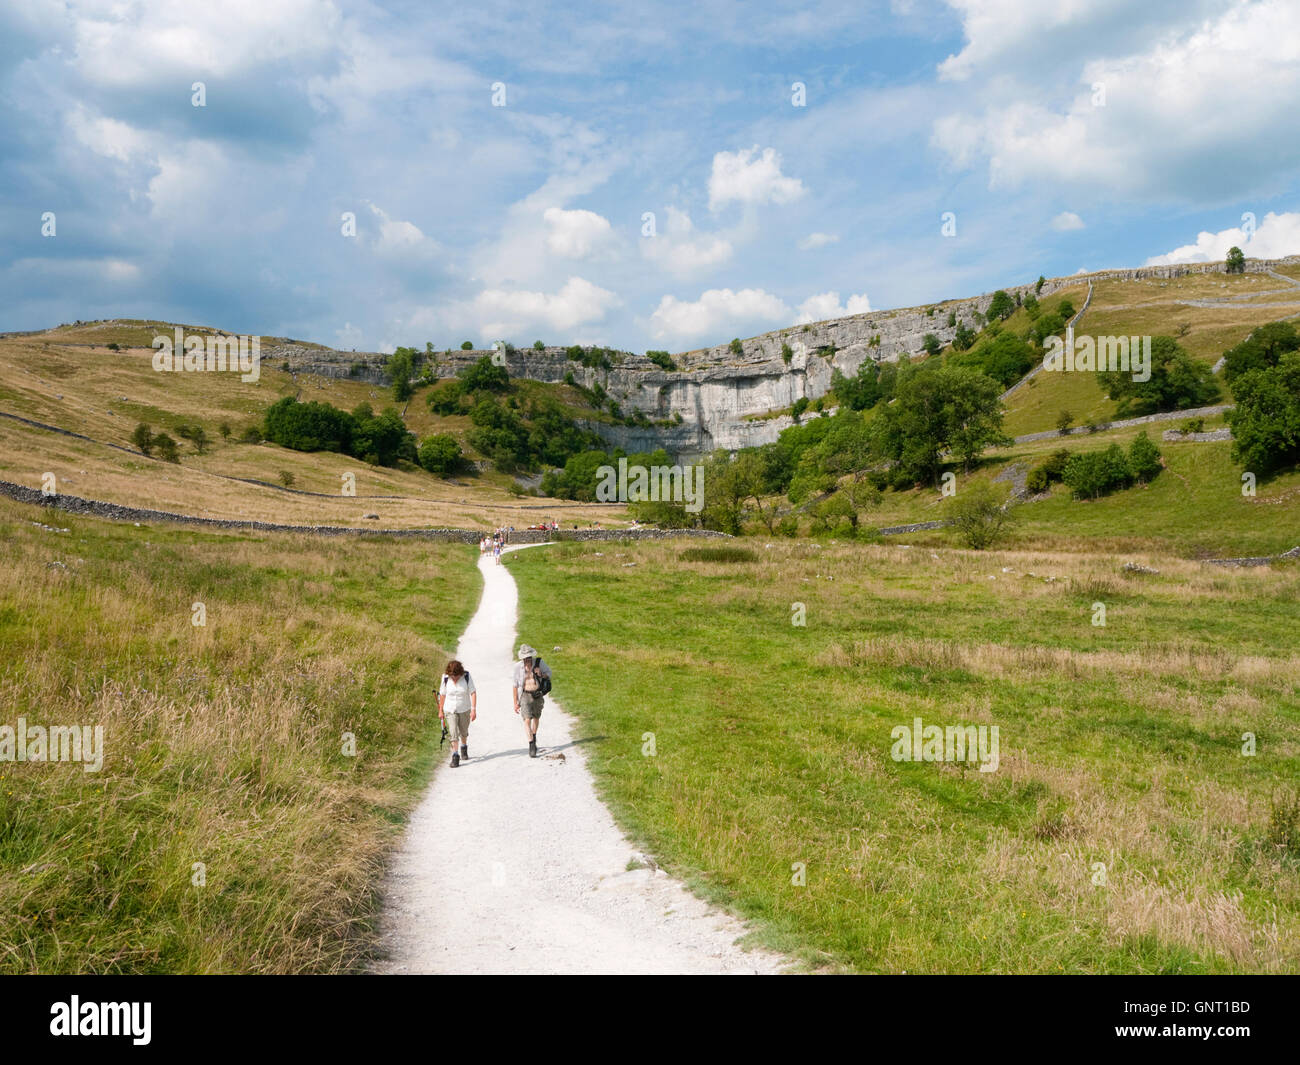 Walkers on the path to Malham Cove, a limestone geological feature in the Yorkshire Dales National Park, England - Stock Image